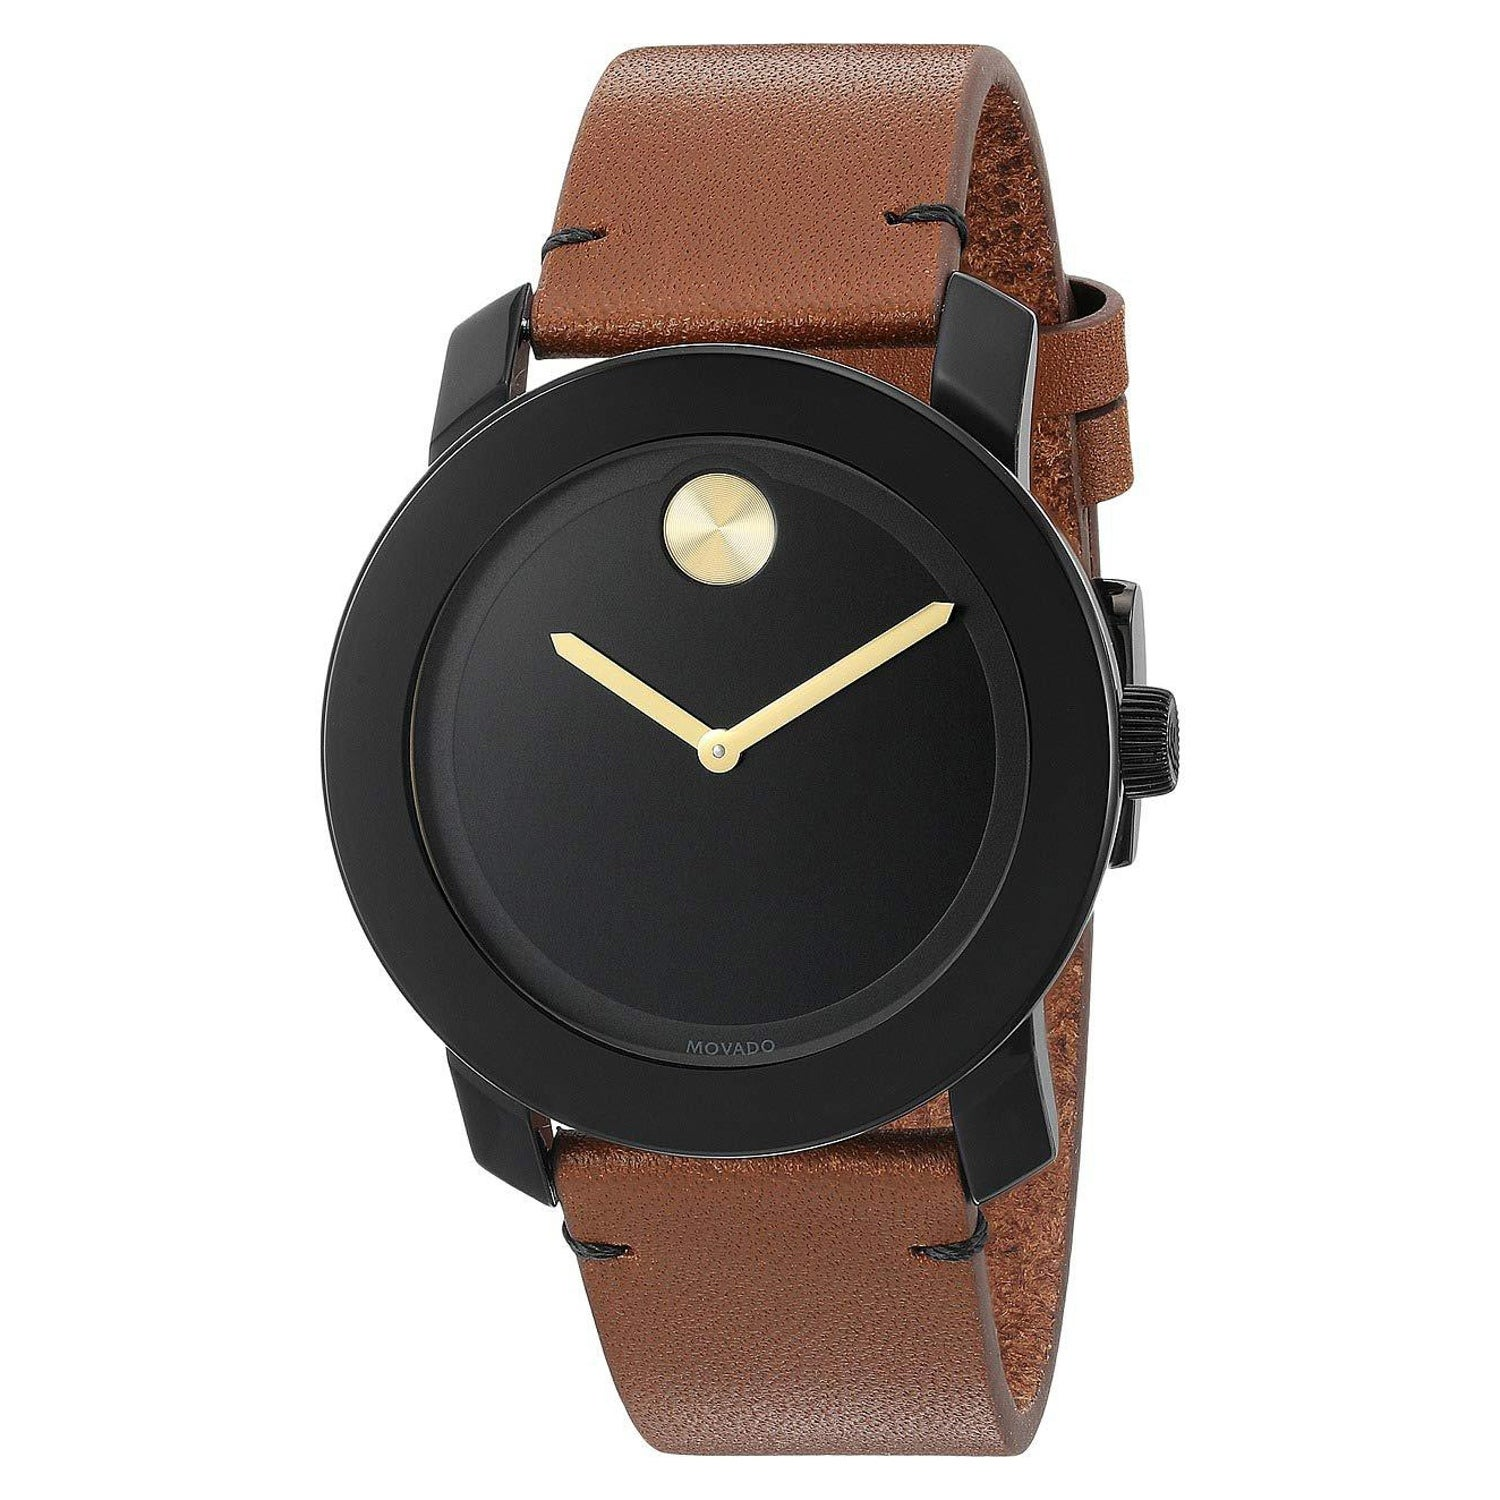 a75a17498 Movado Men's Watches | Find Great Watches Deals Shopping at Overstock